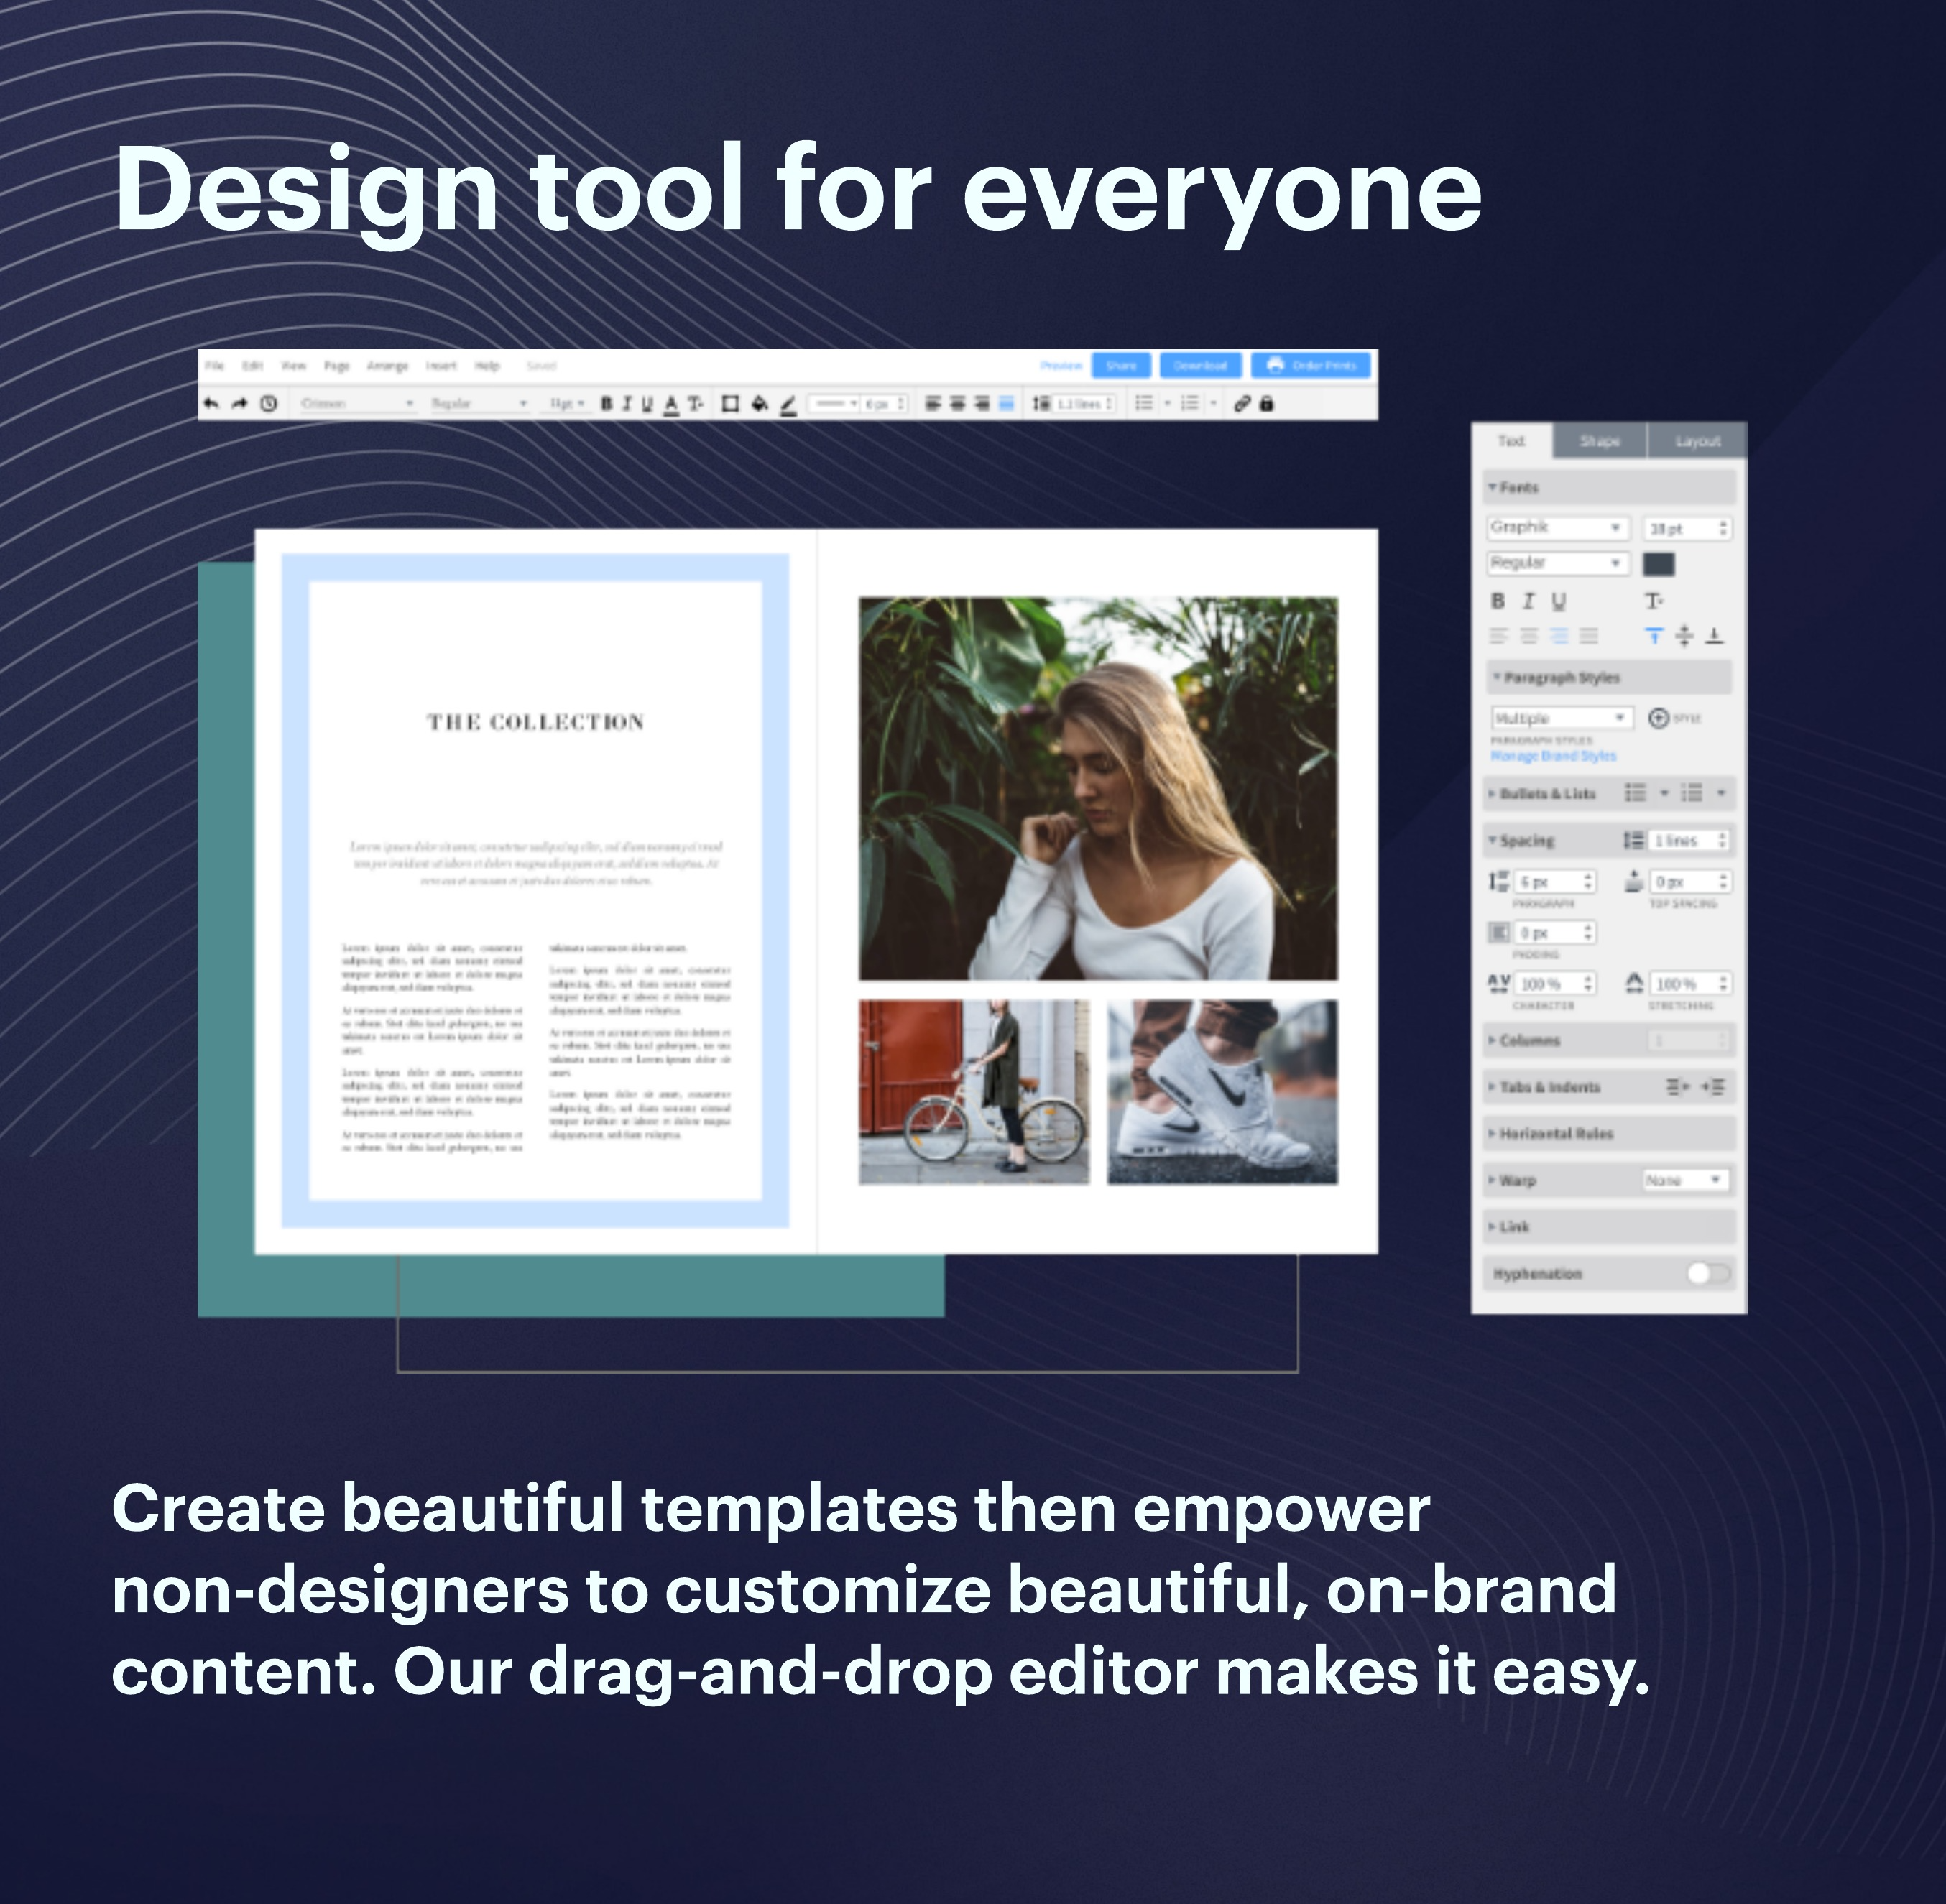 Create beautiful templates then empower non-designers to customize beautiful, on-brand content. Our drag-and-drop editor makes it easy.